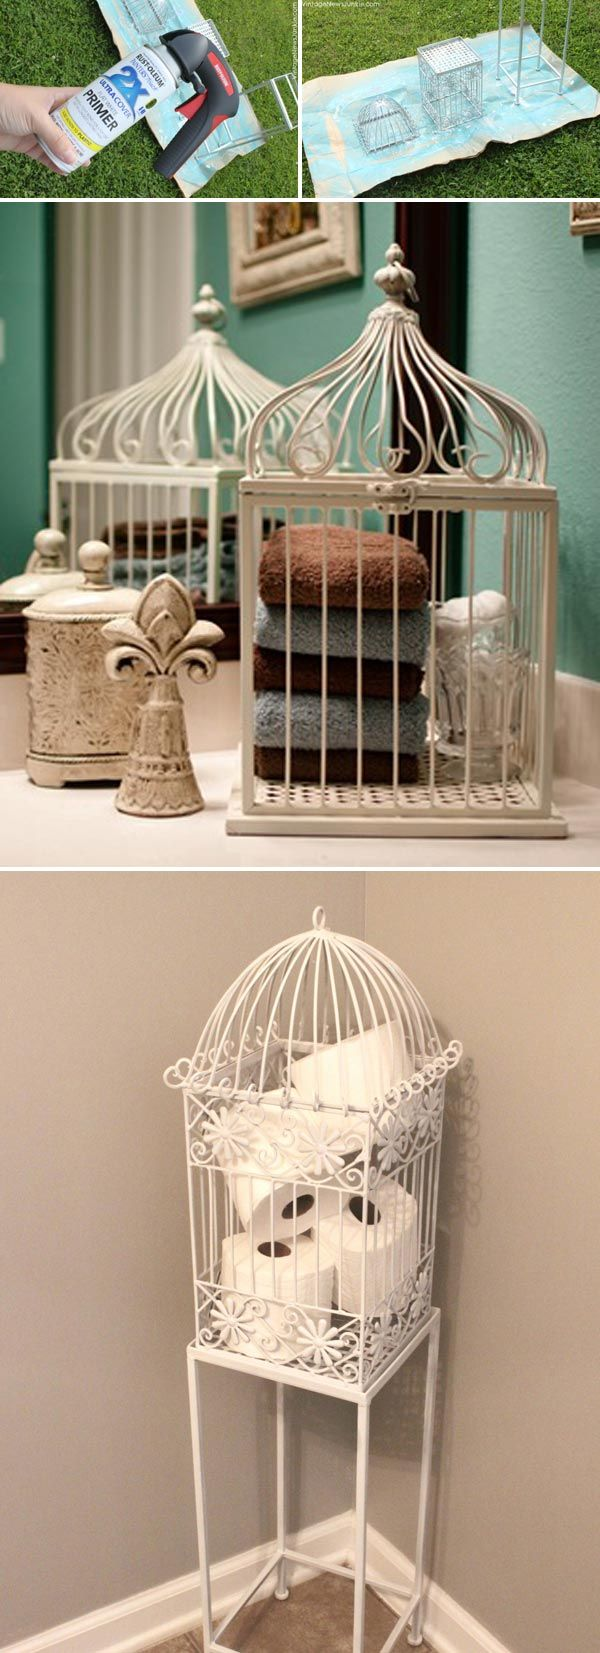 Put a birdcage in your bathroom for creative towel or toilet paper storage.